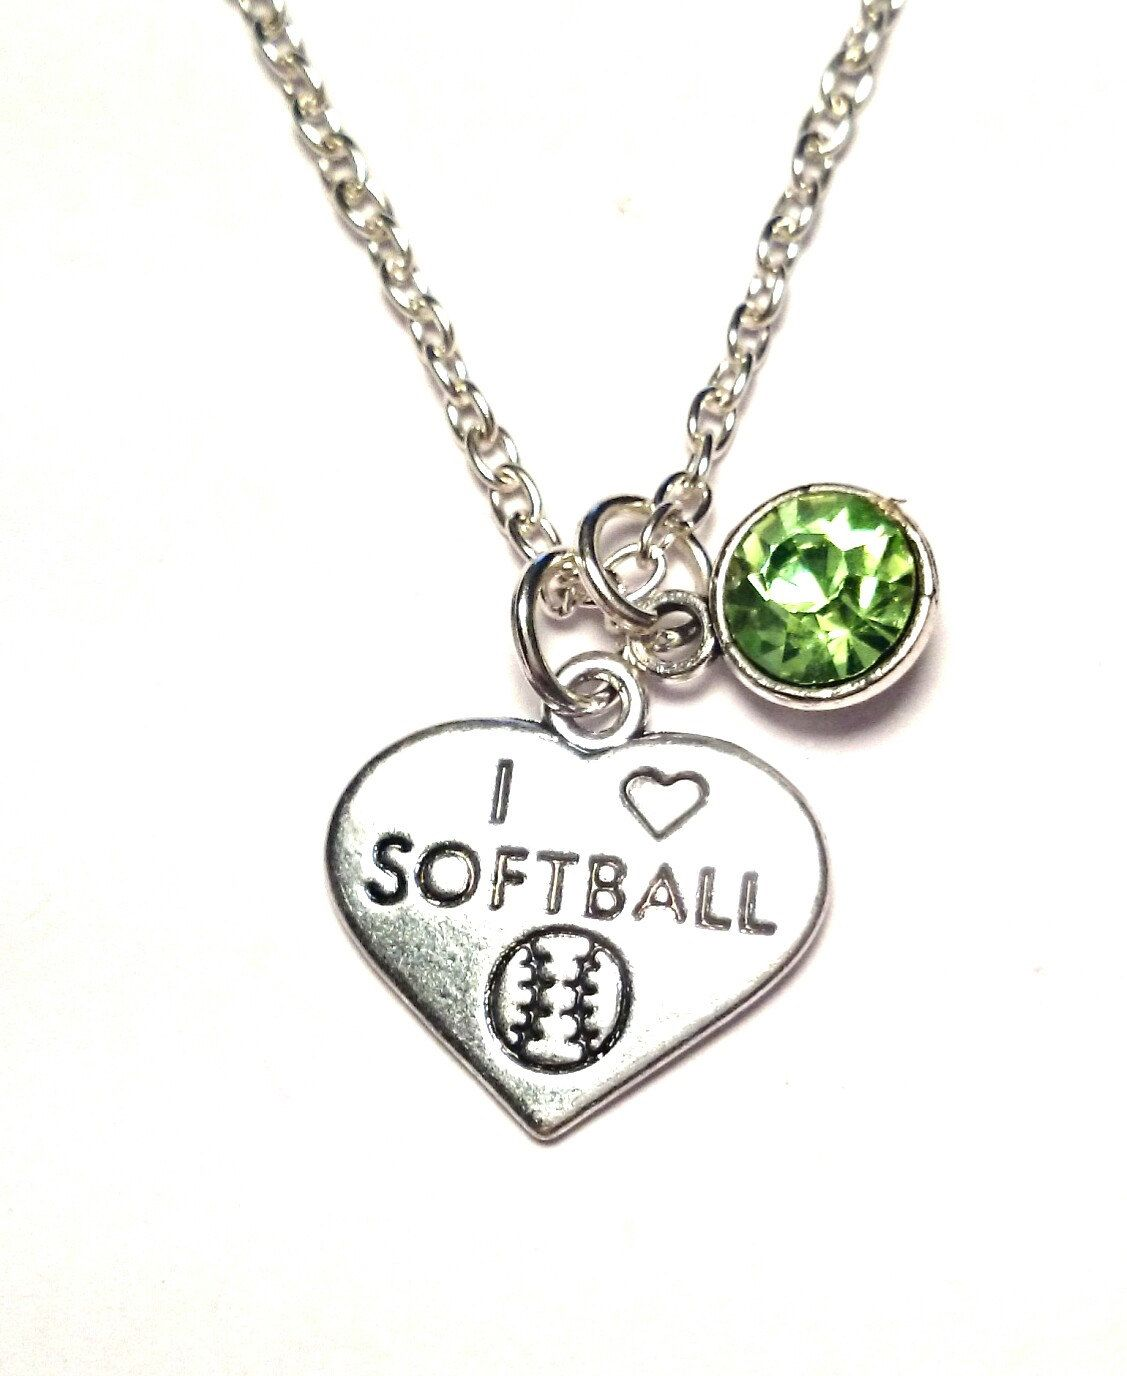 necklace skyrim little pendant shopping baseball jewelry fan love player league products heart softball women i gift